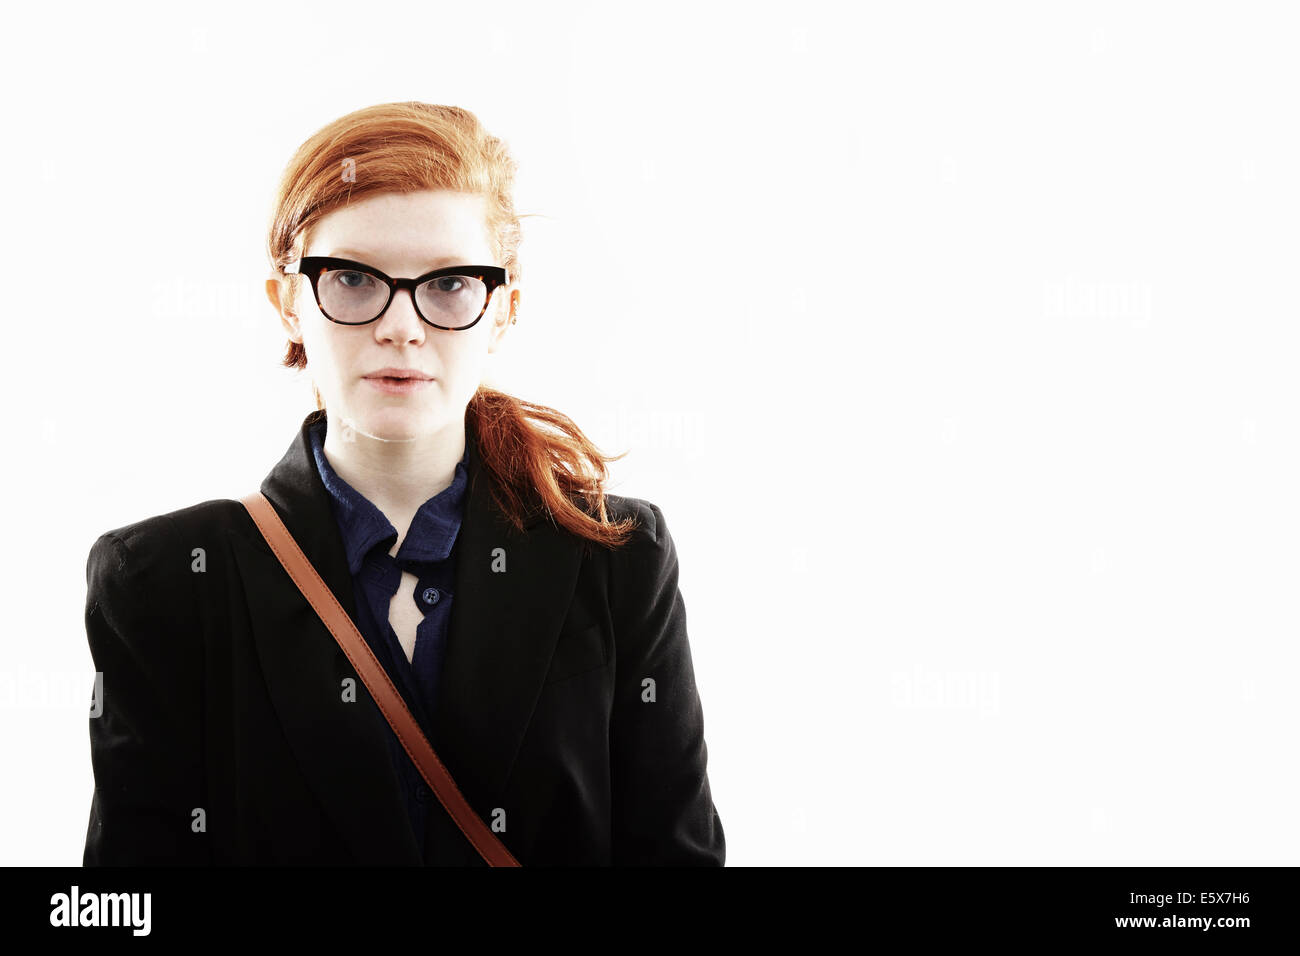 Studio portrait of young woman with eyeglasses and blank expression - Stock Image